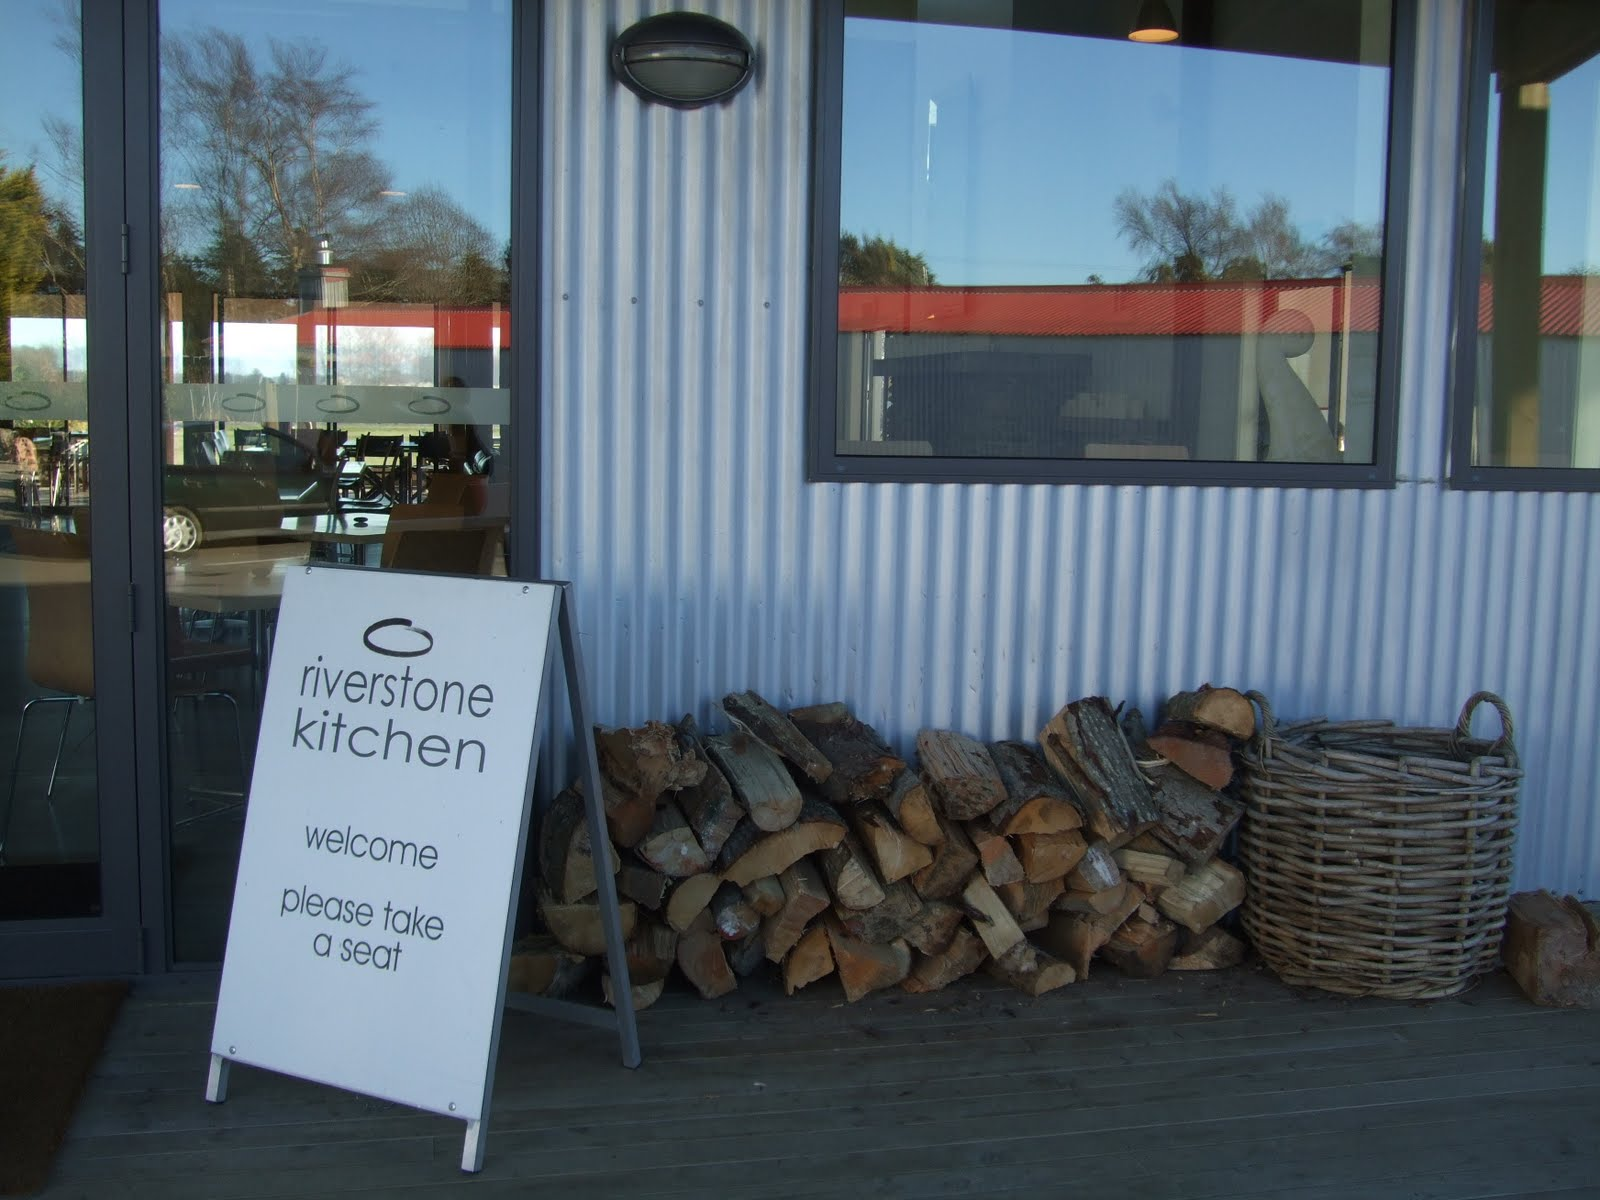 Riverstone Kitchen, hwy 1 | Dunedin is for Lovers